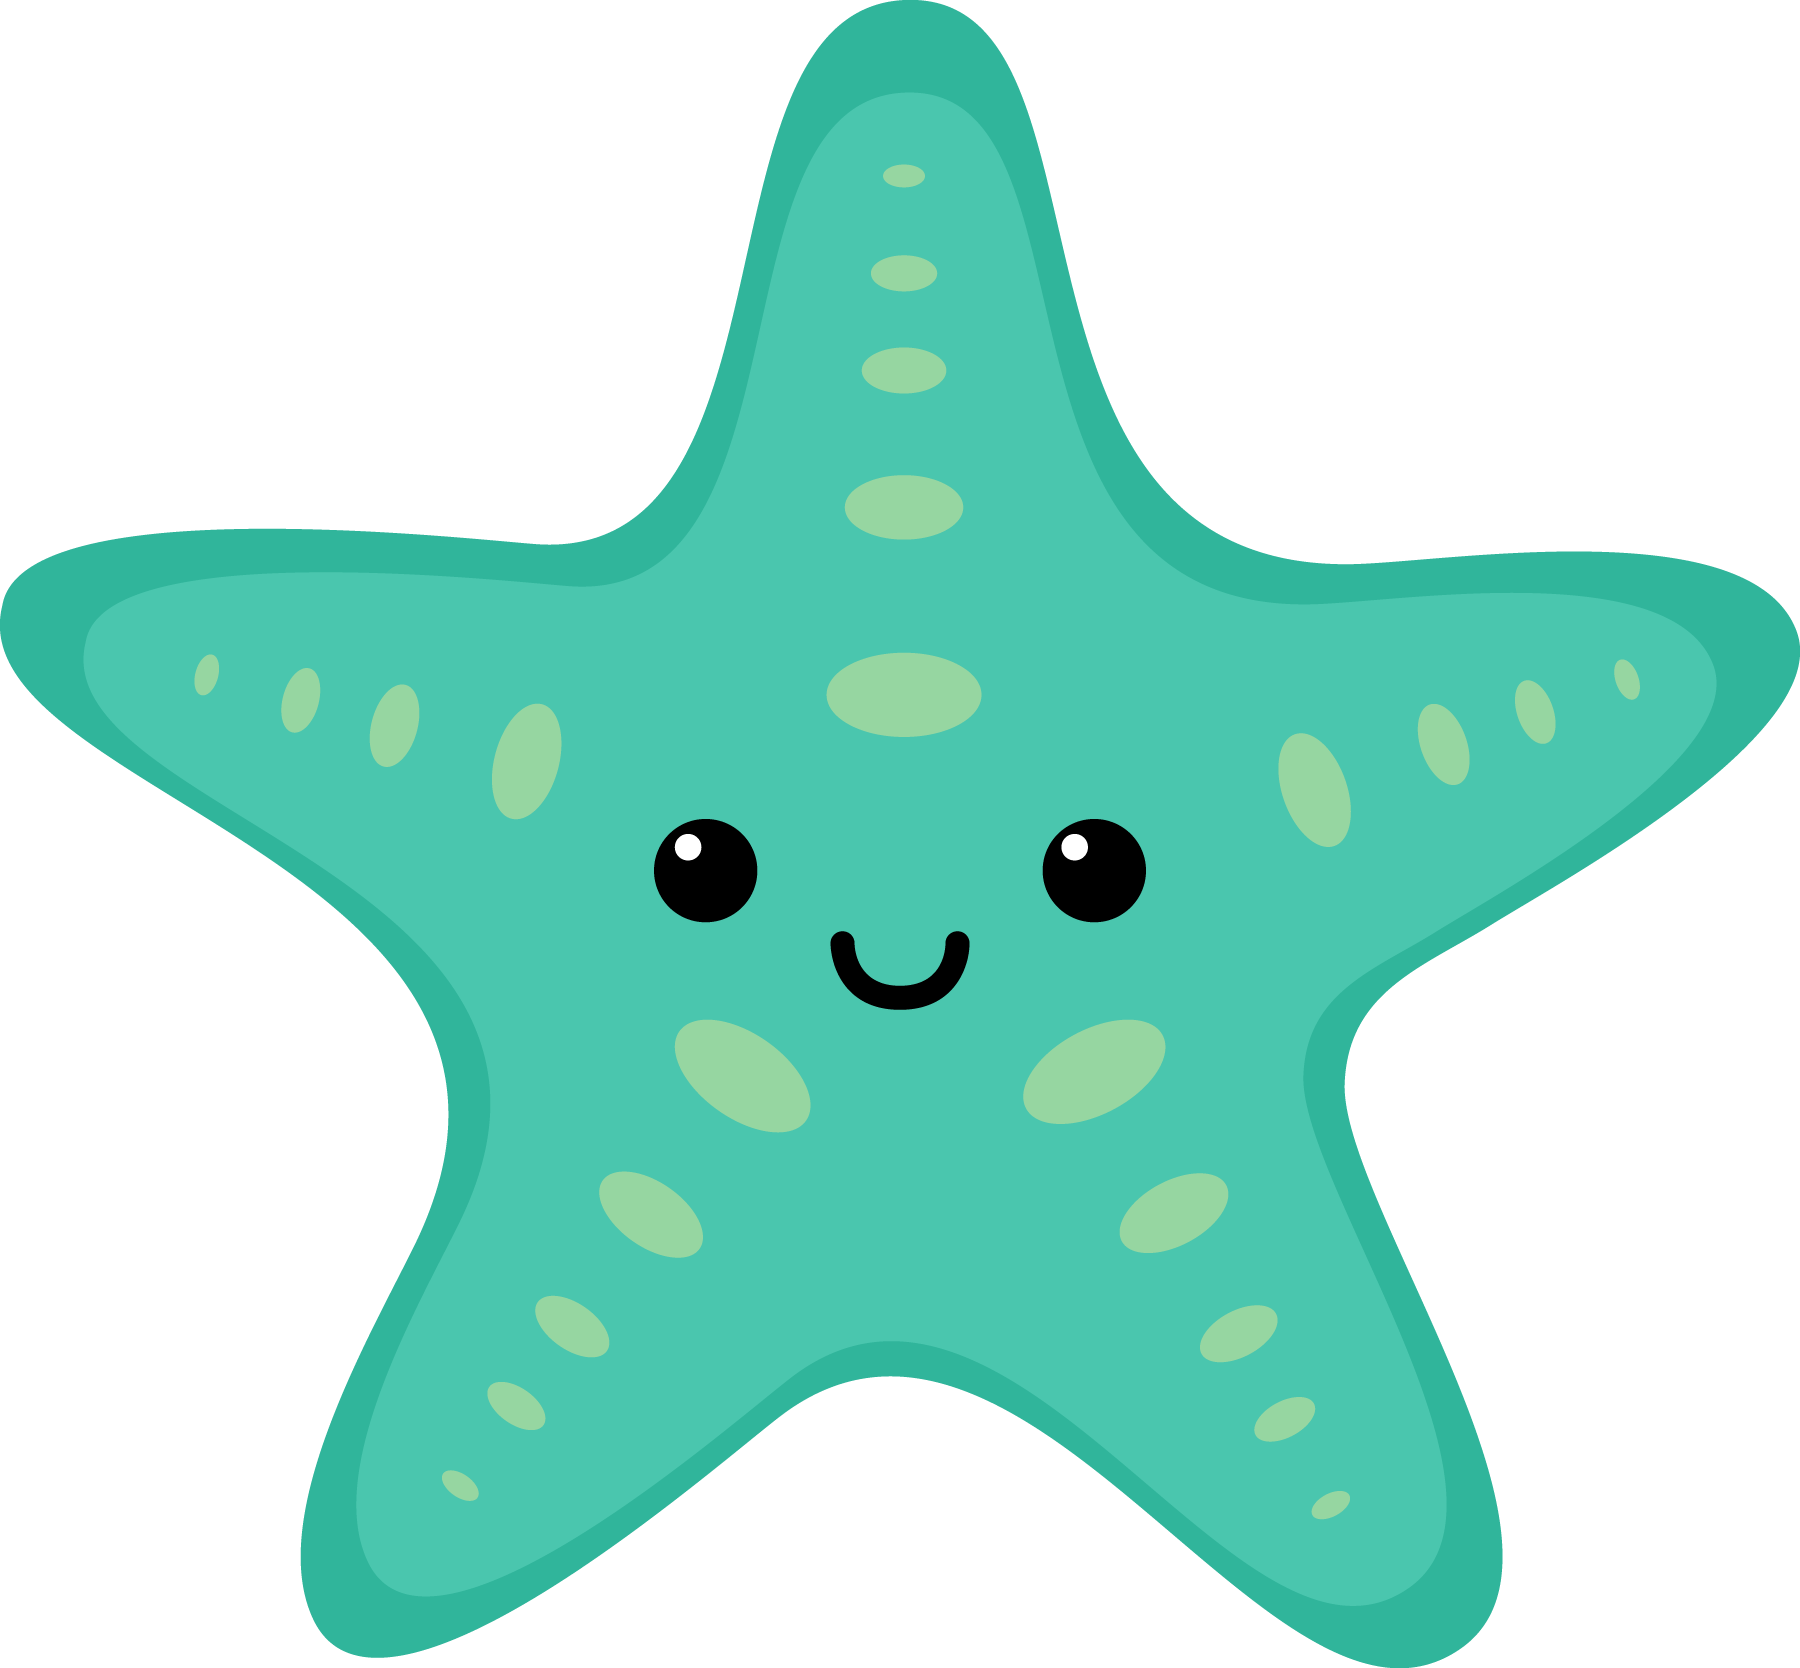 Starfish clipart star shaped object. Sea turquoise toppers pinterest